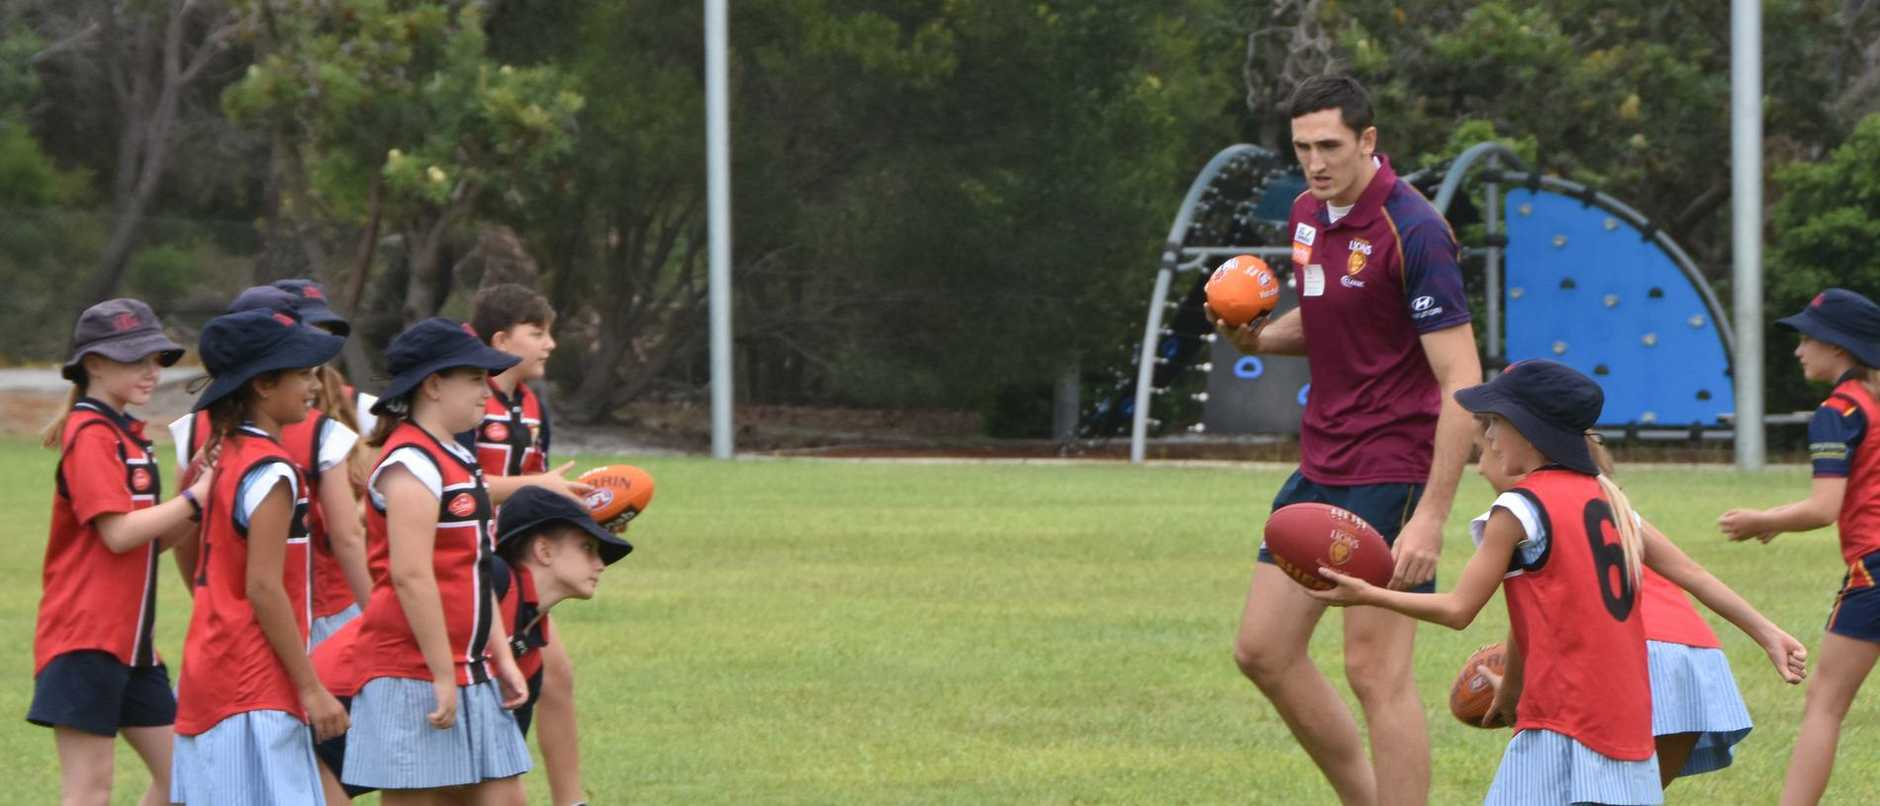 Looking to soak up the skills from the Lions young guns of AFL.